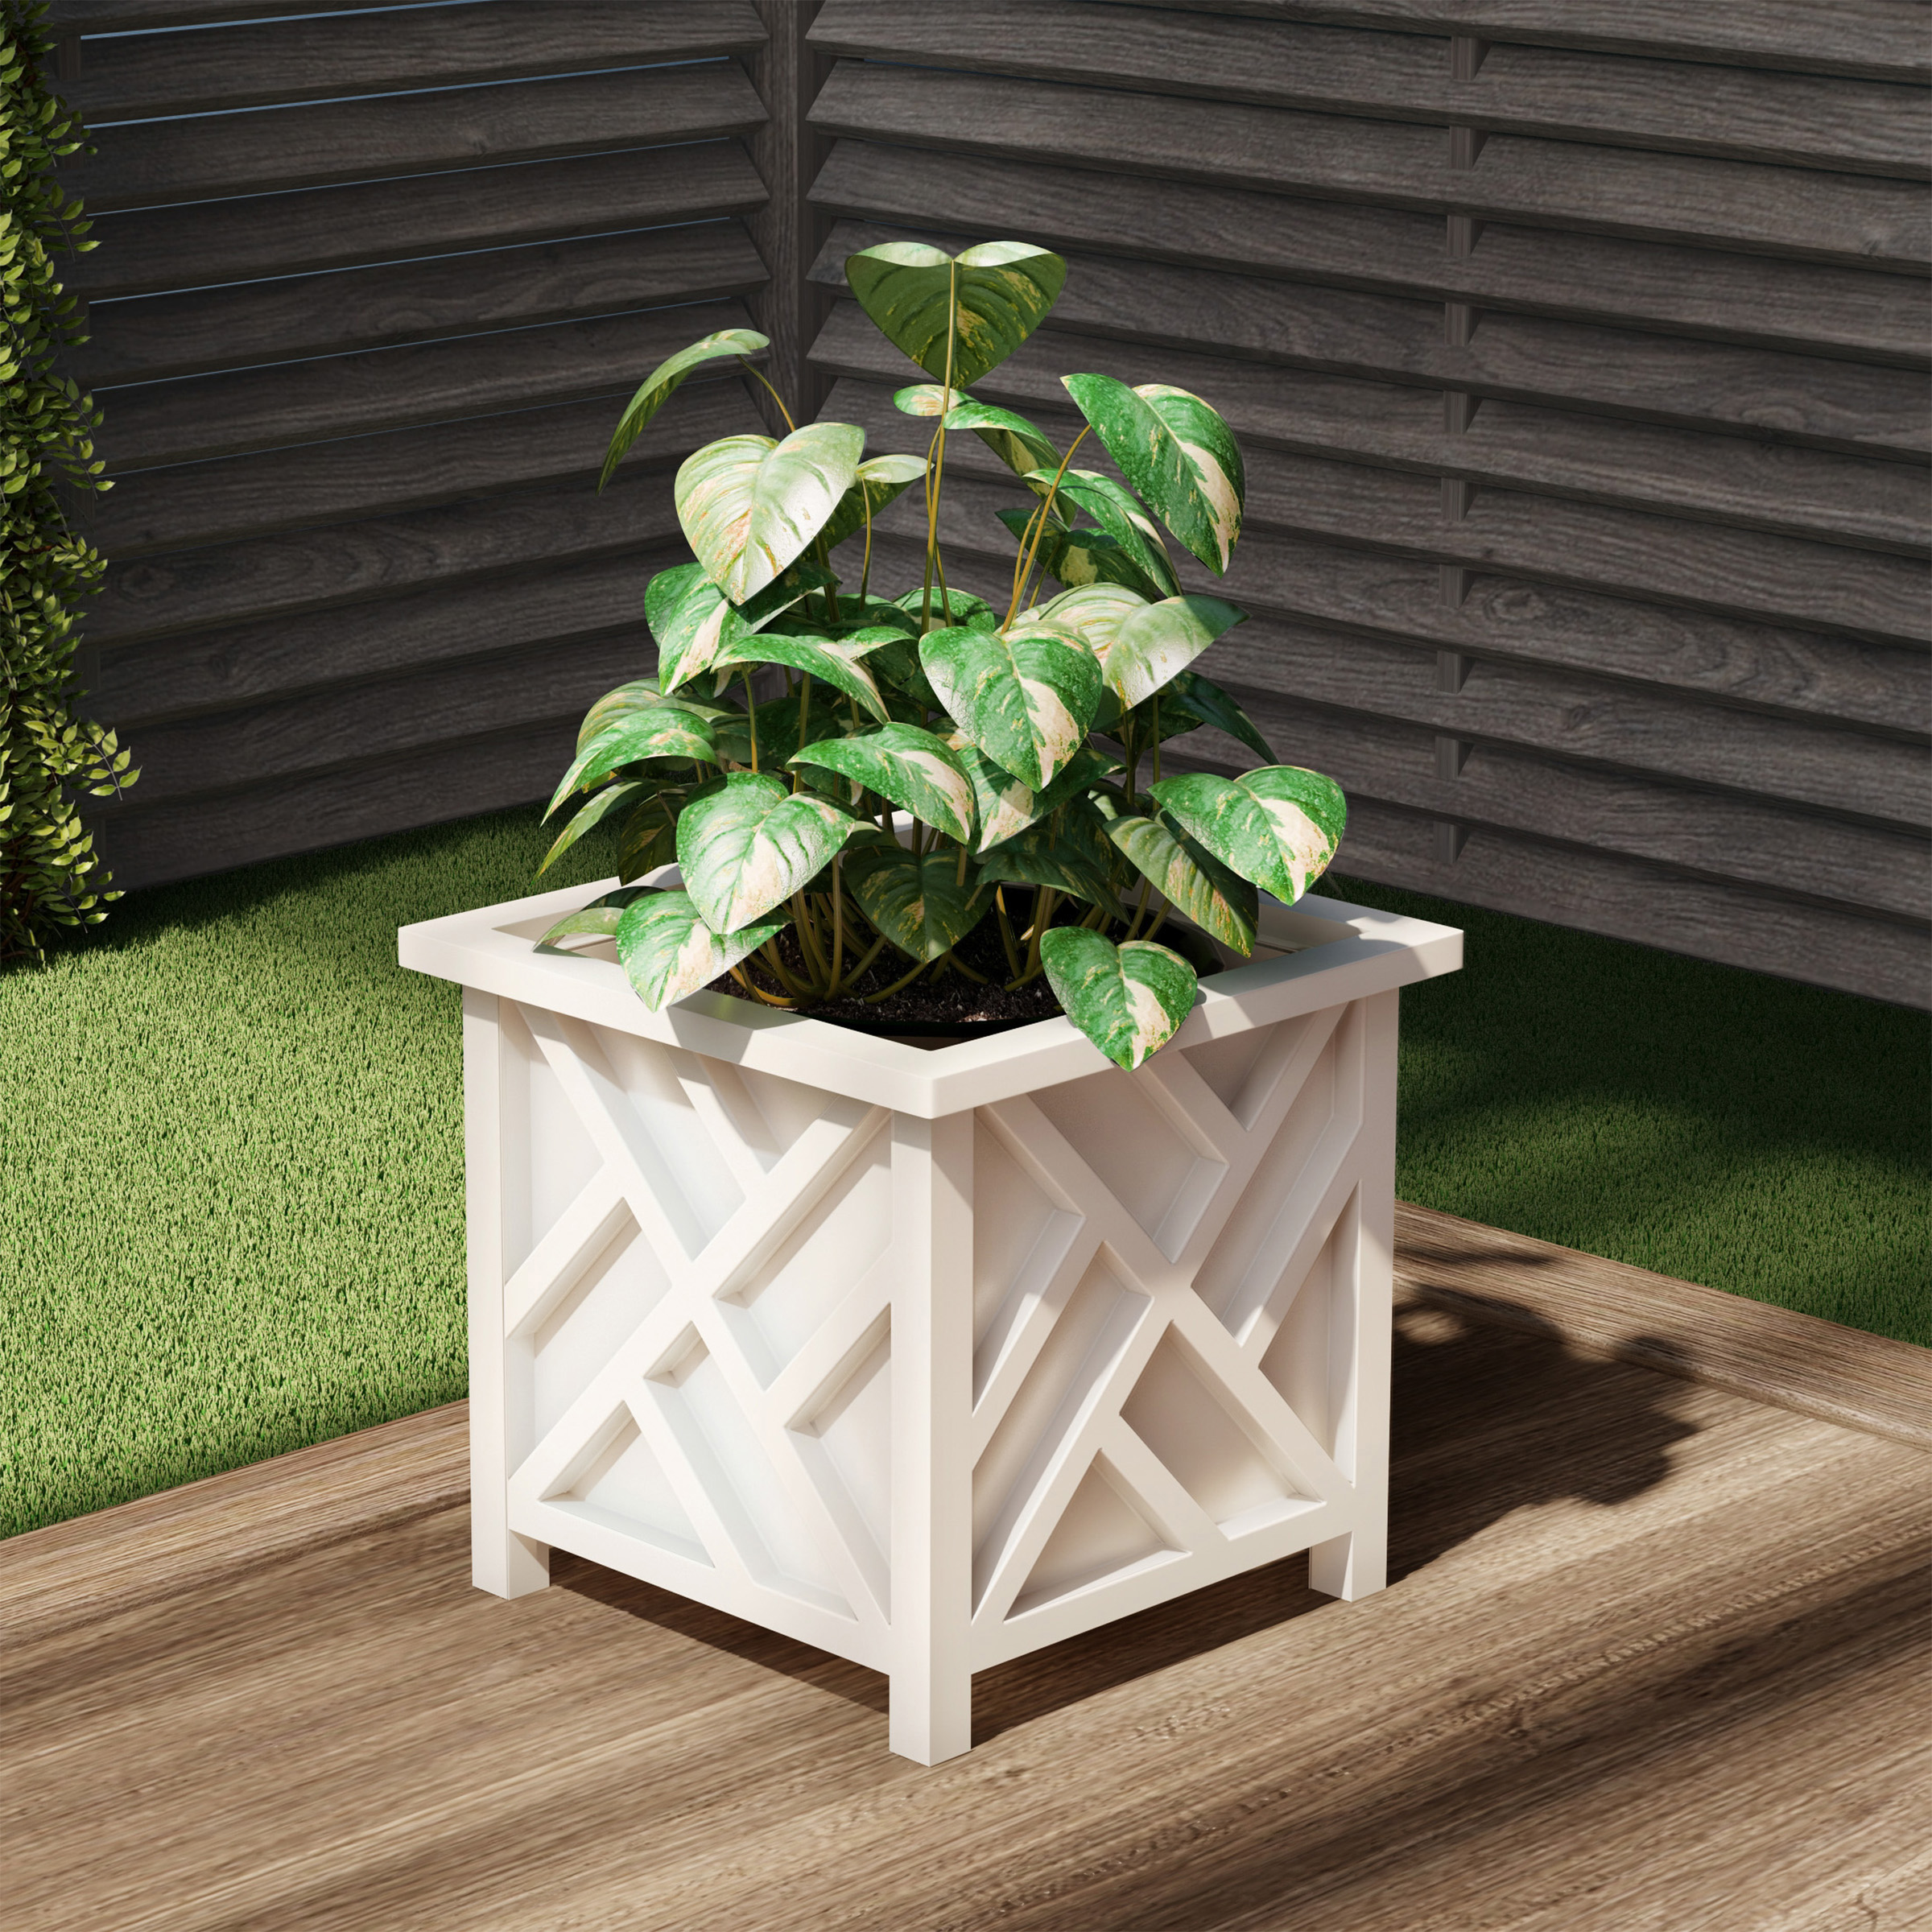 Plant Pot Holder Planter Container Box By Pure Garden White